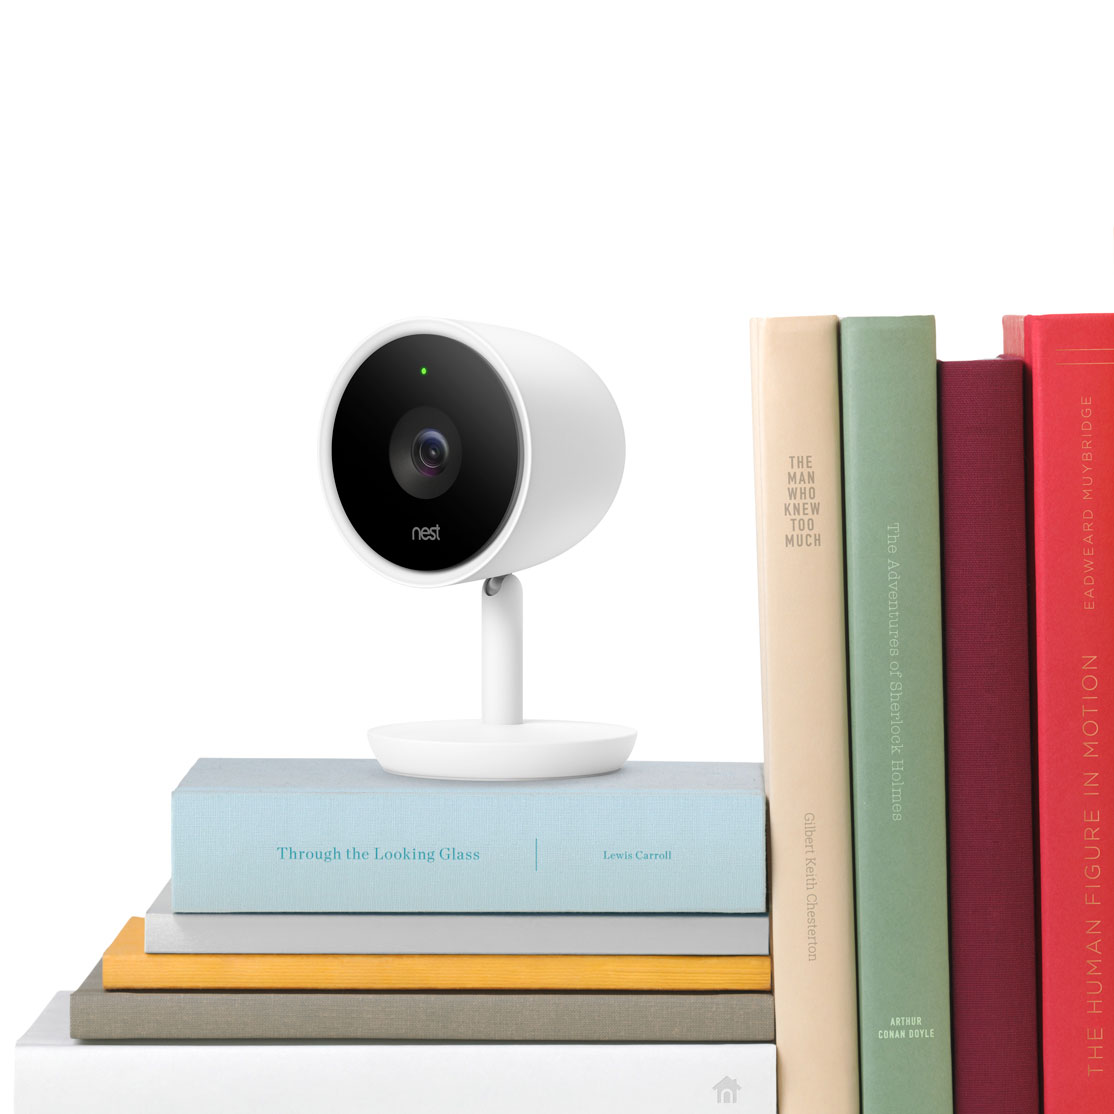 Nest's New Security Camera Can Distinguish Between People and Pets